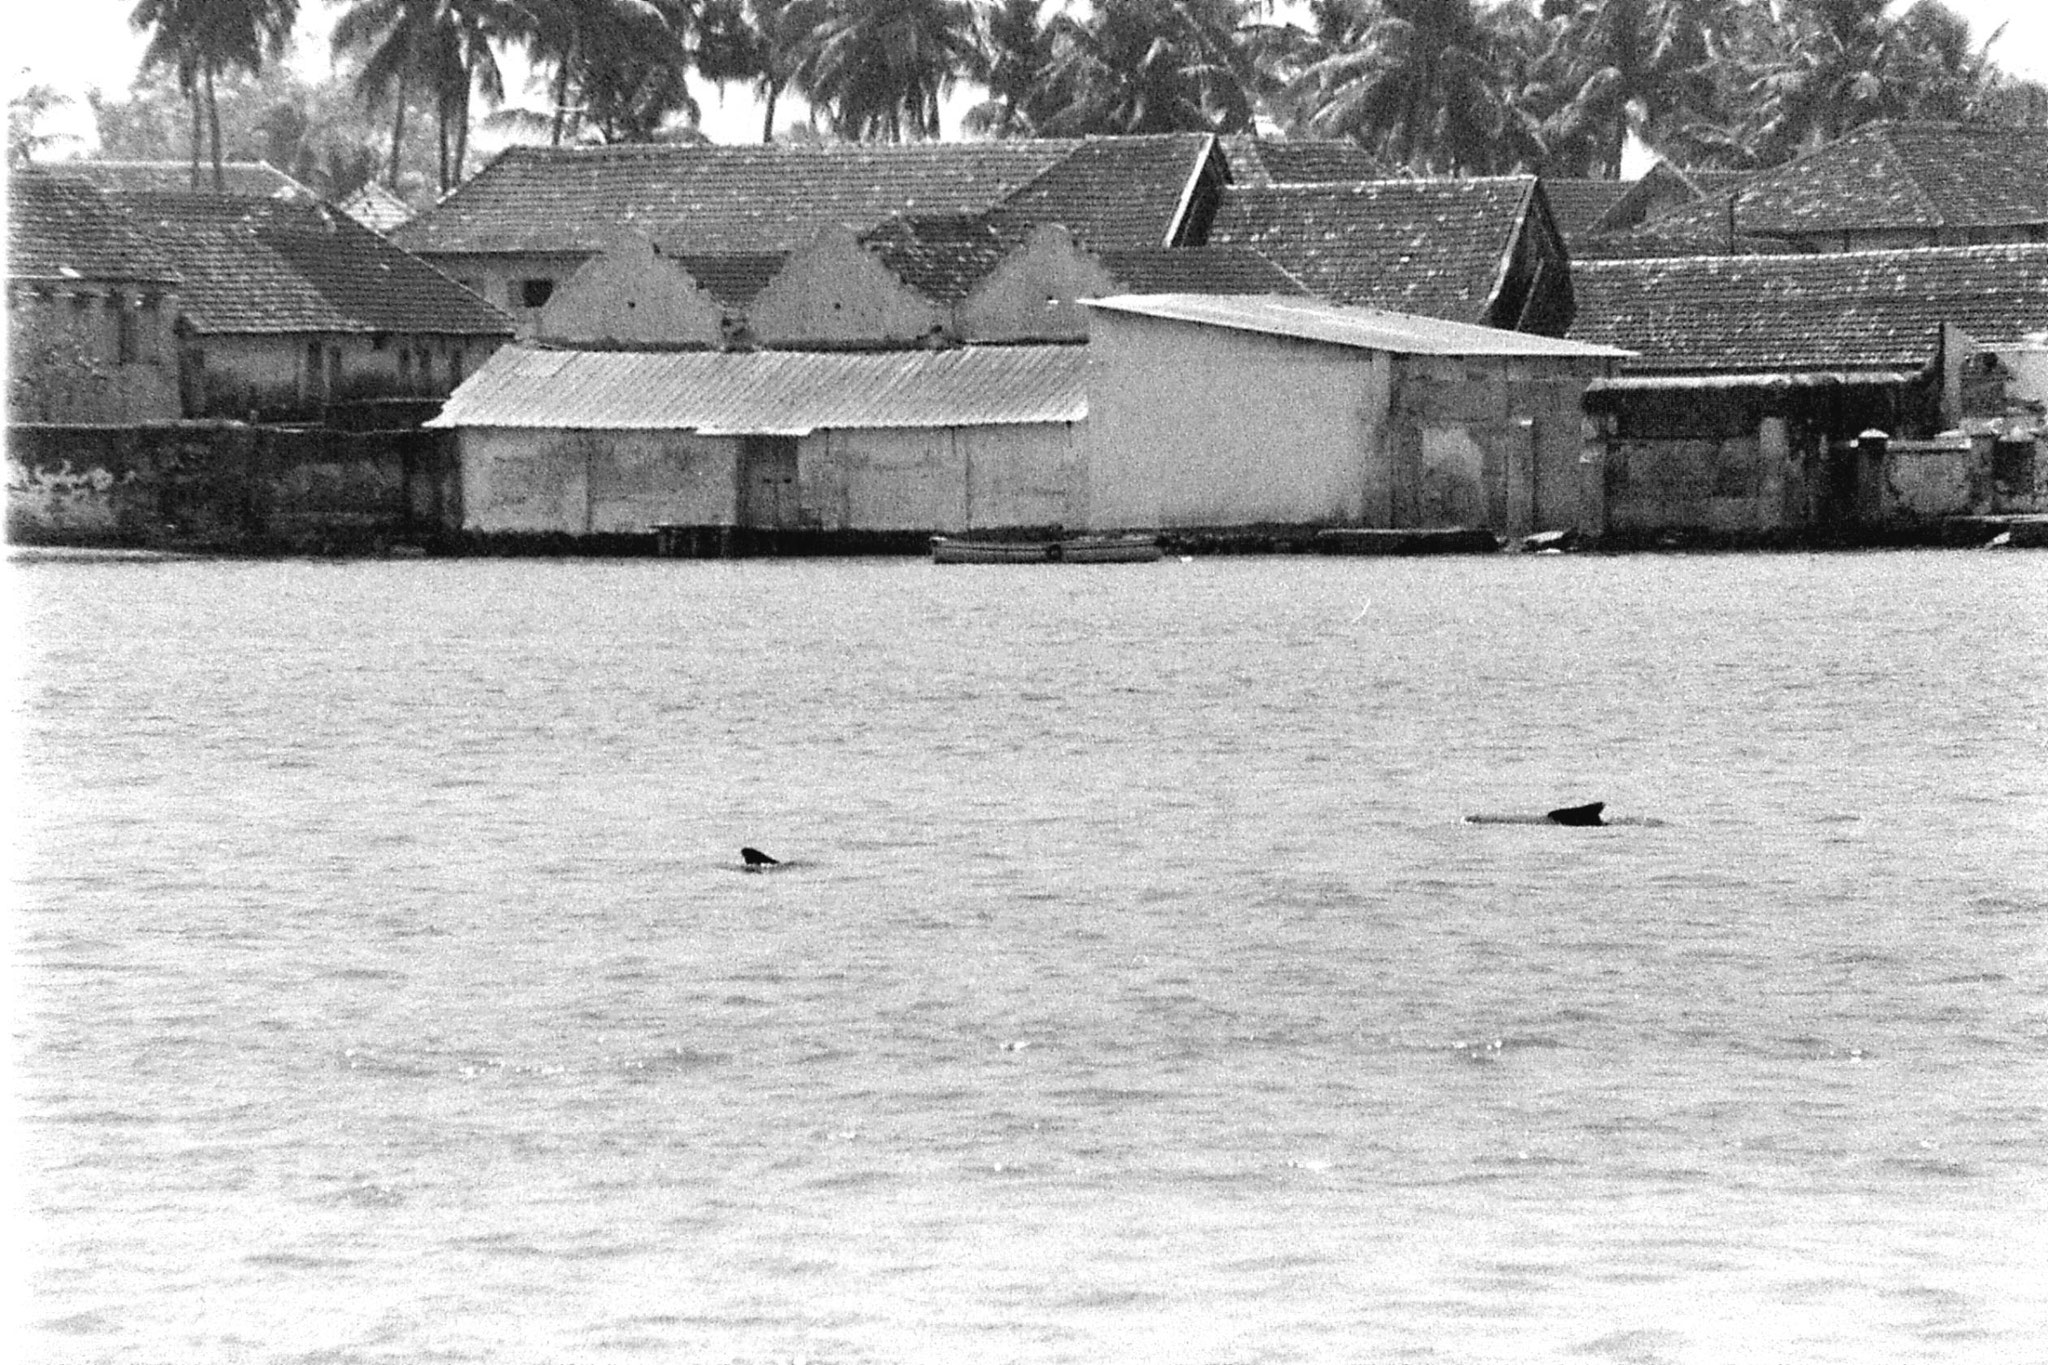 25/2/90: 0: Cochin dolphins and views of Fort Cochin